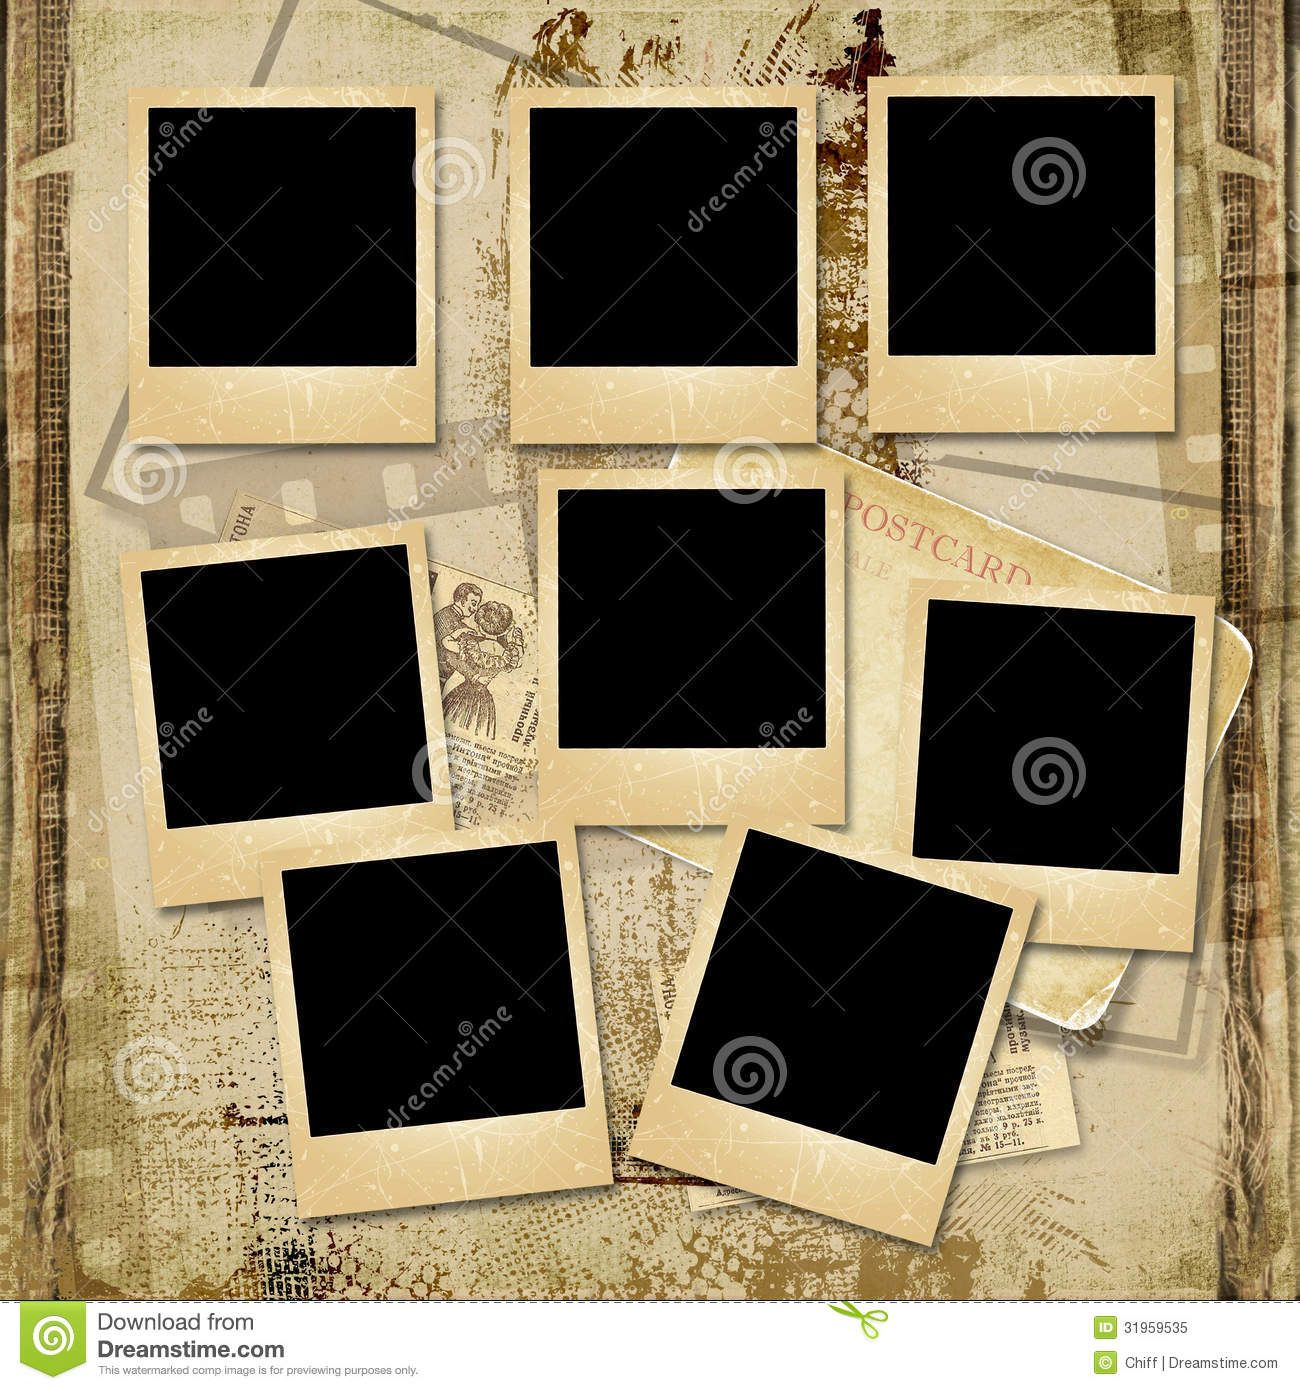 polaroid frame - Google Search | Another Concept Board | Pinterest ...